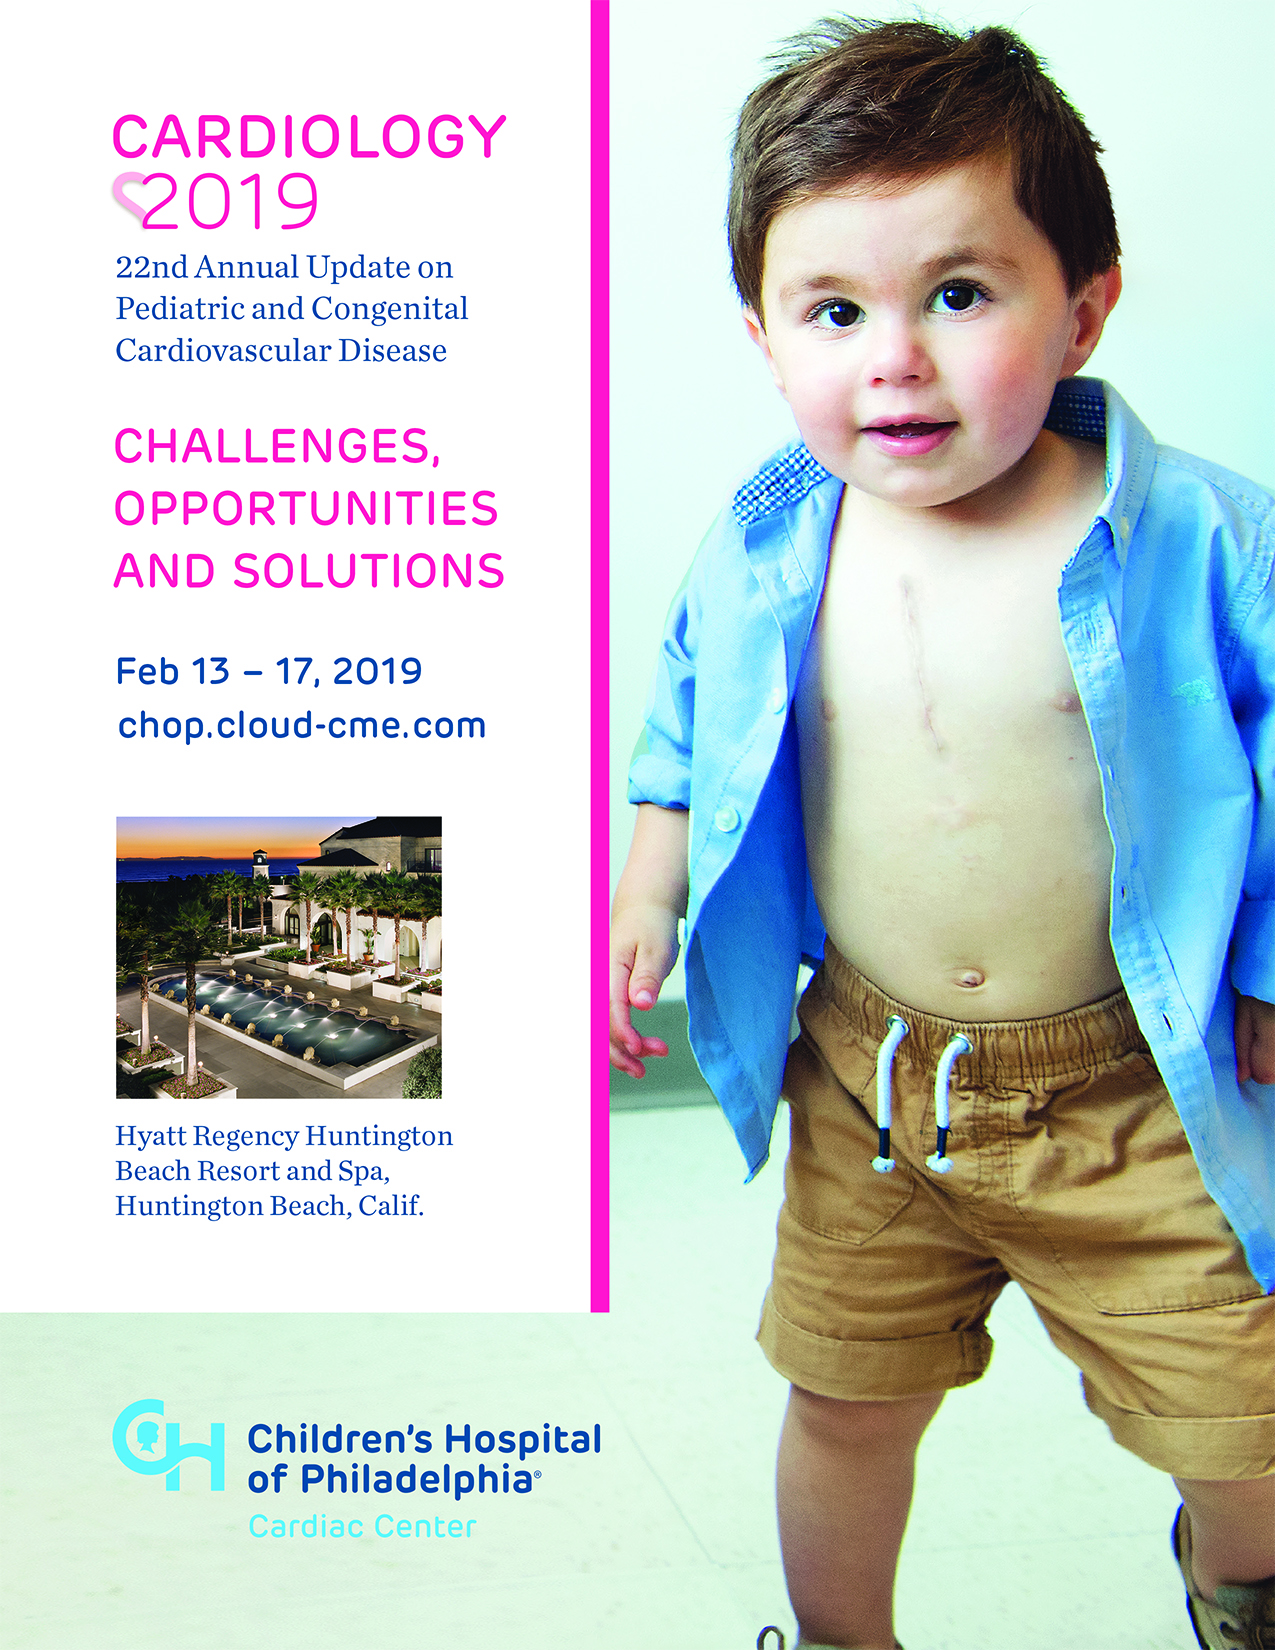 Cardiology 2019: Annual Update on Pediatric and Congenital Cardiovascular Disease Banner